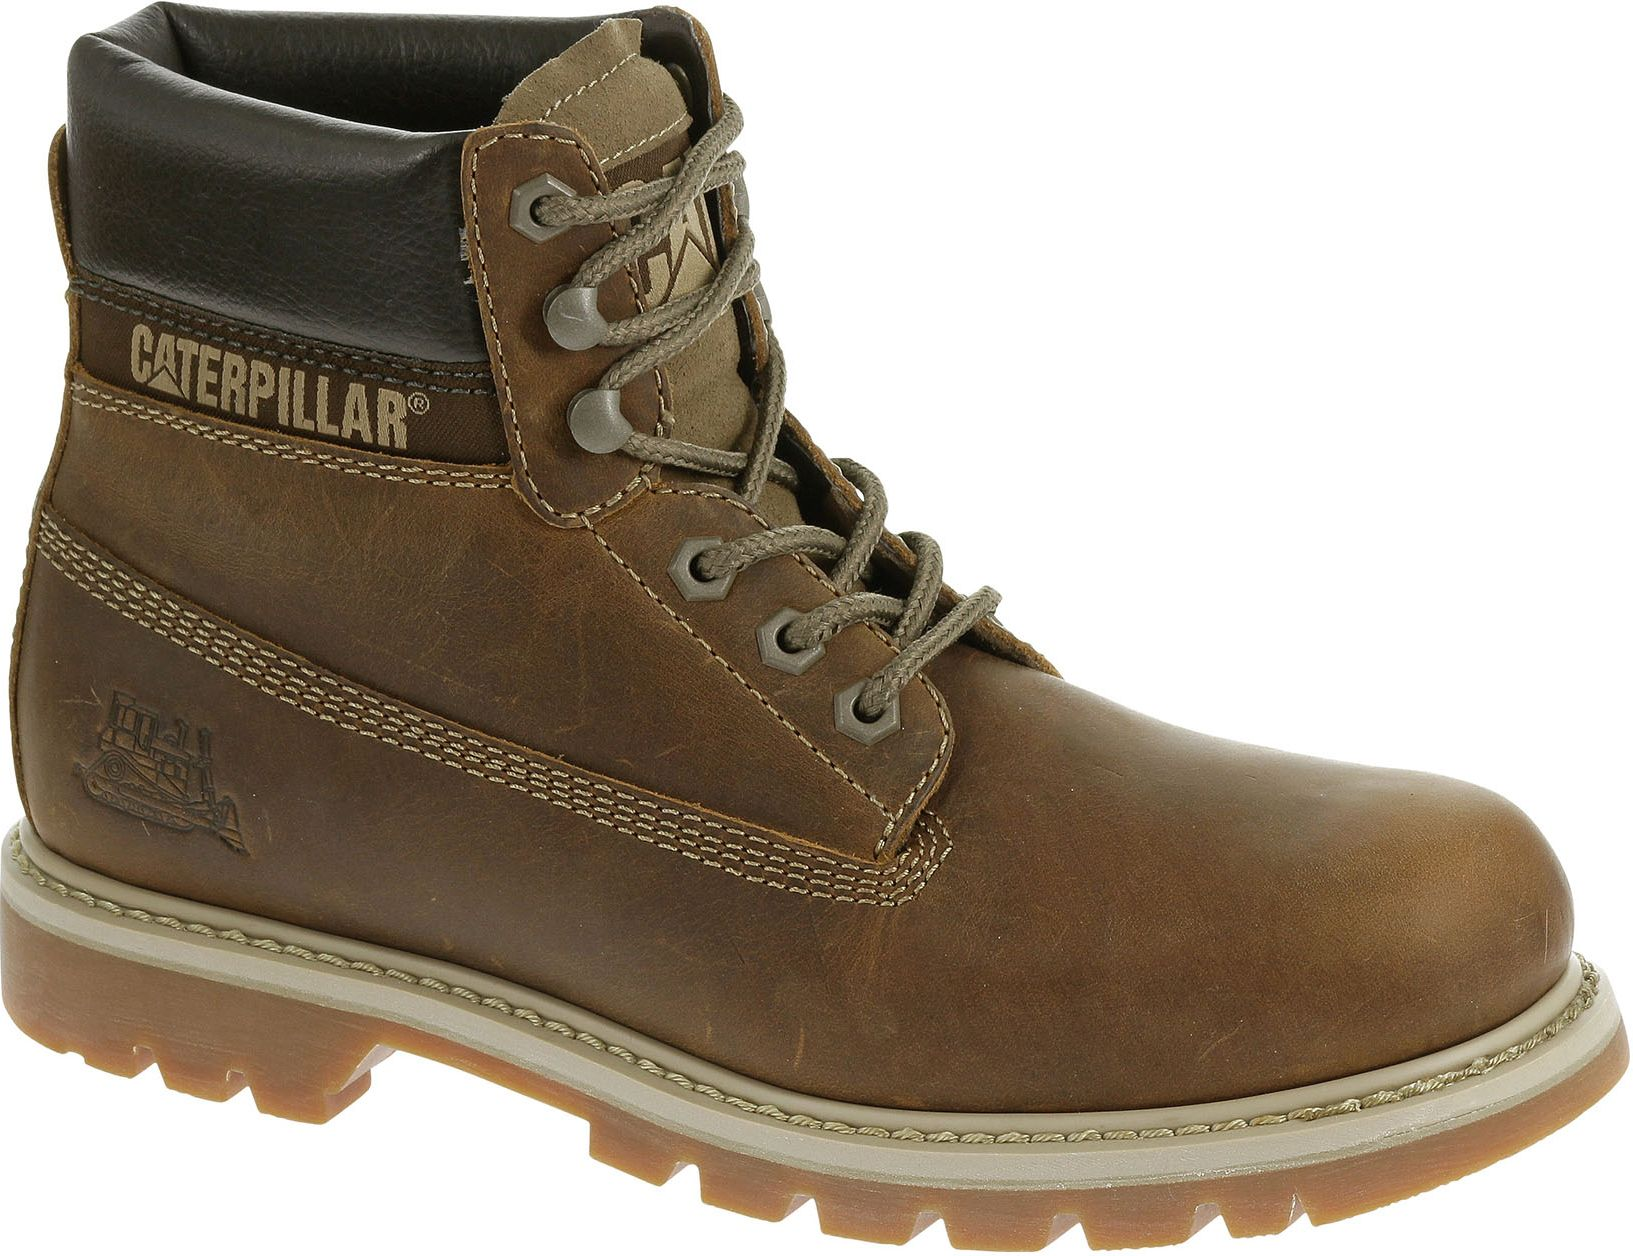 Caterpillar Men's Shoes Colorado Dark Beige. 43 (P708190)